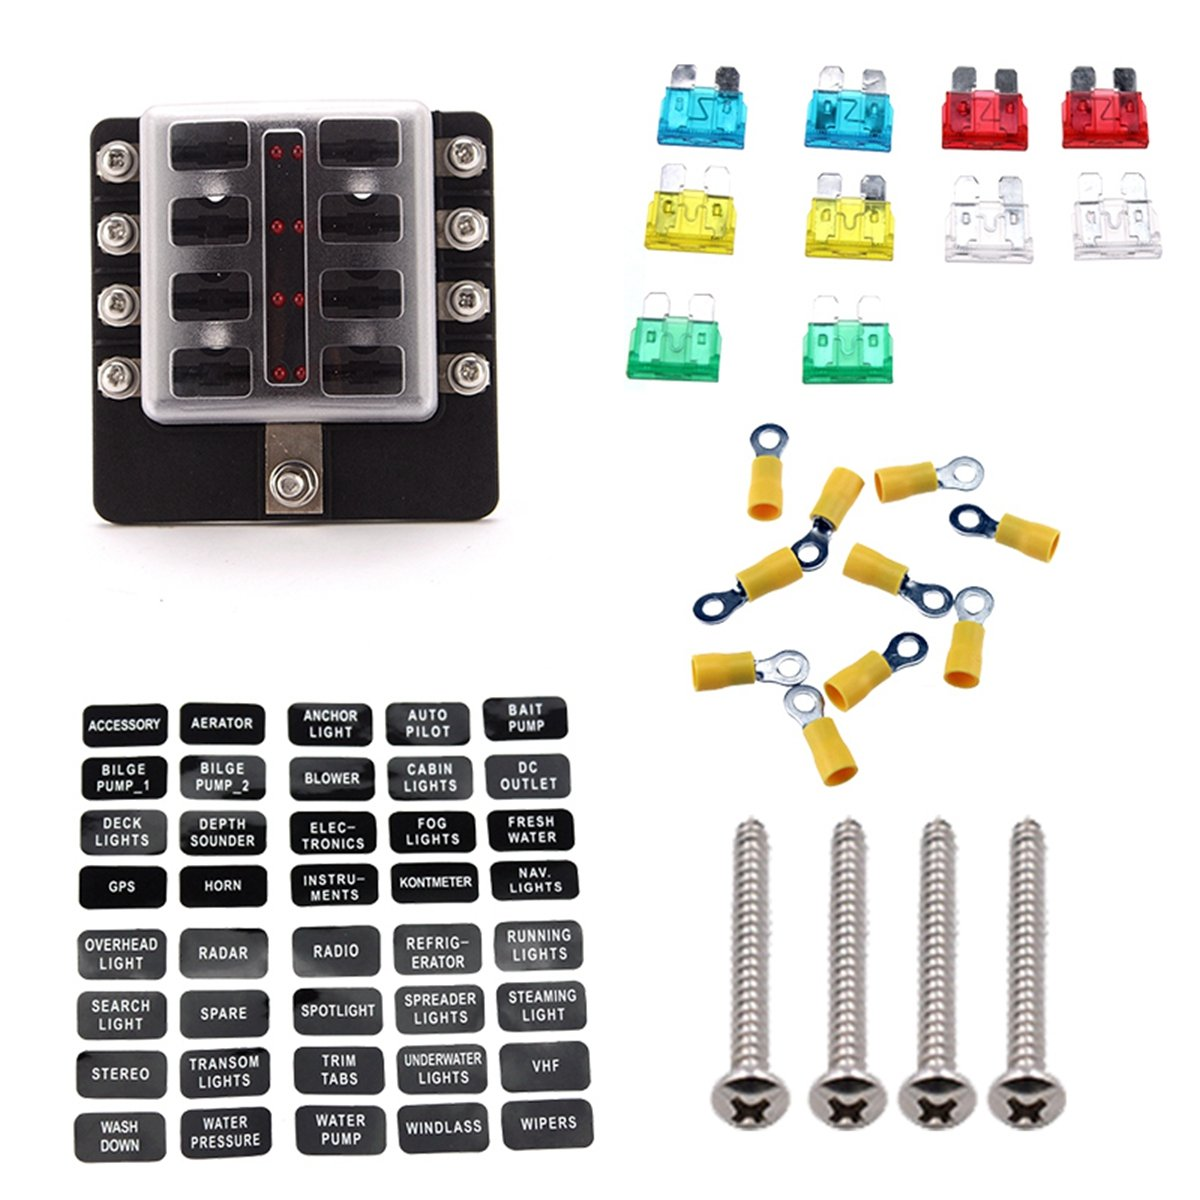 Carviya Ambuker 10-Way Blade Fuse Box with LED Indicator - Fuse Block for Automotive with fuse and spade terminals and wiring kits (12 Way)